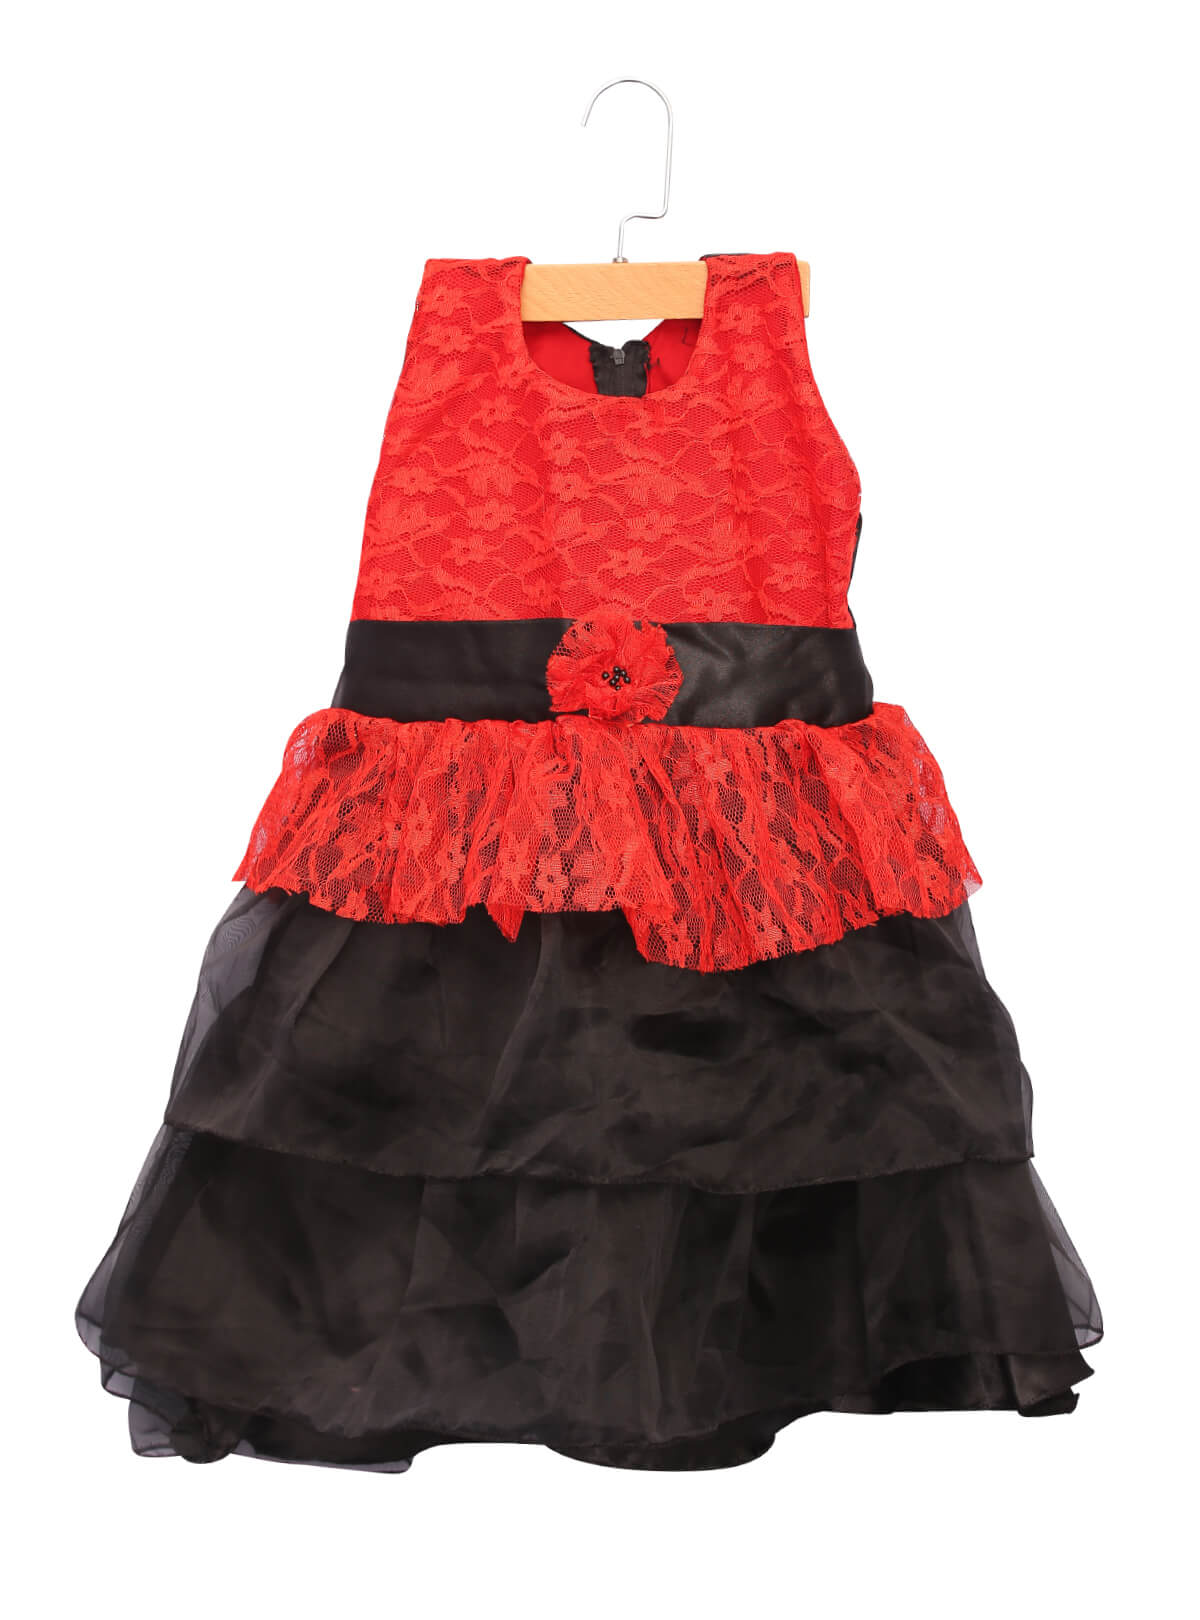 Red and Black Baby Frock For Girls